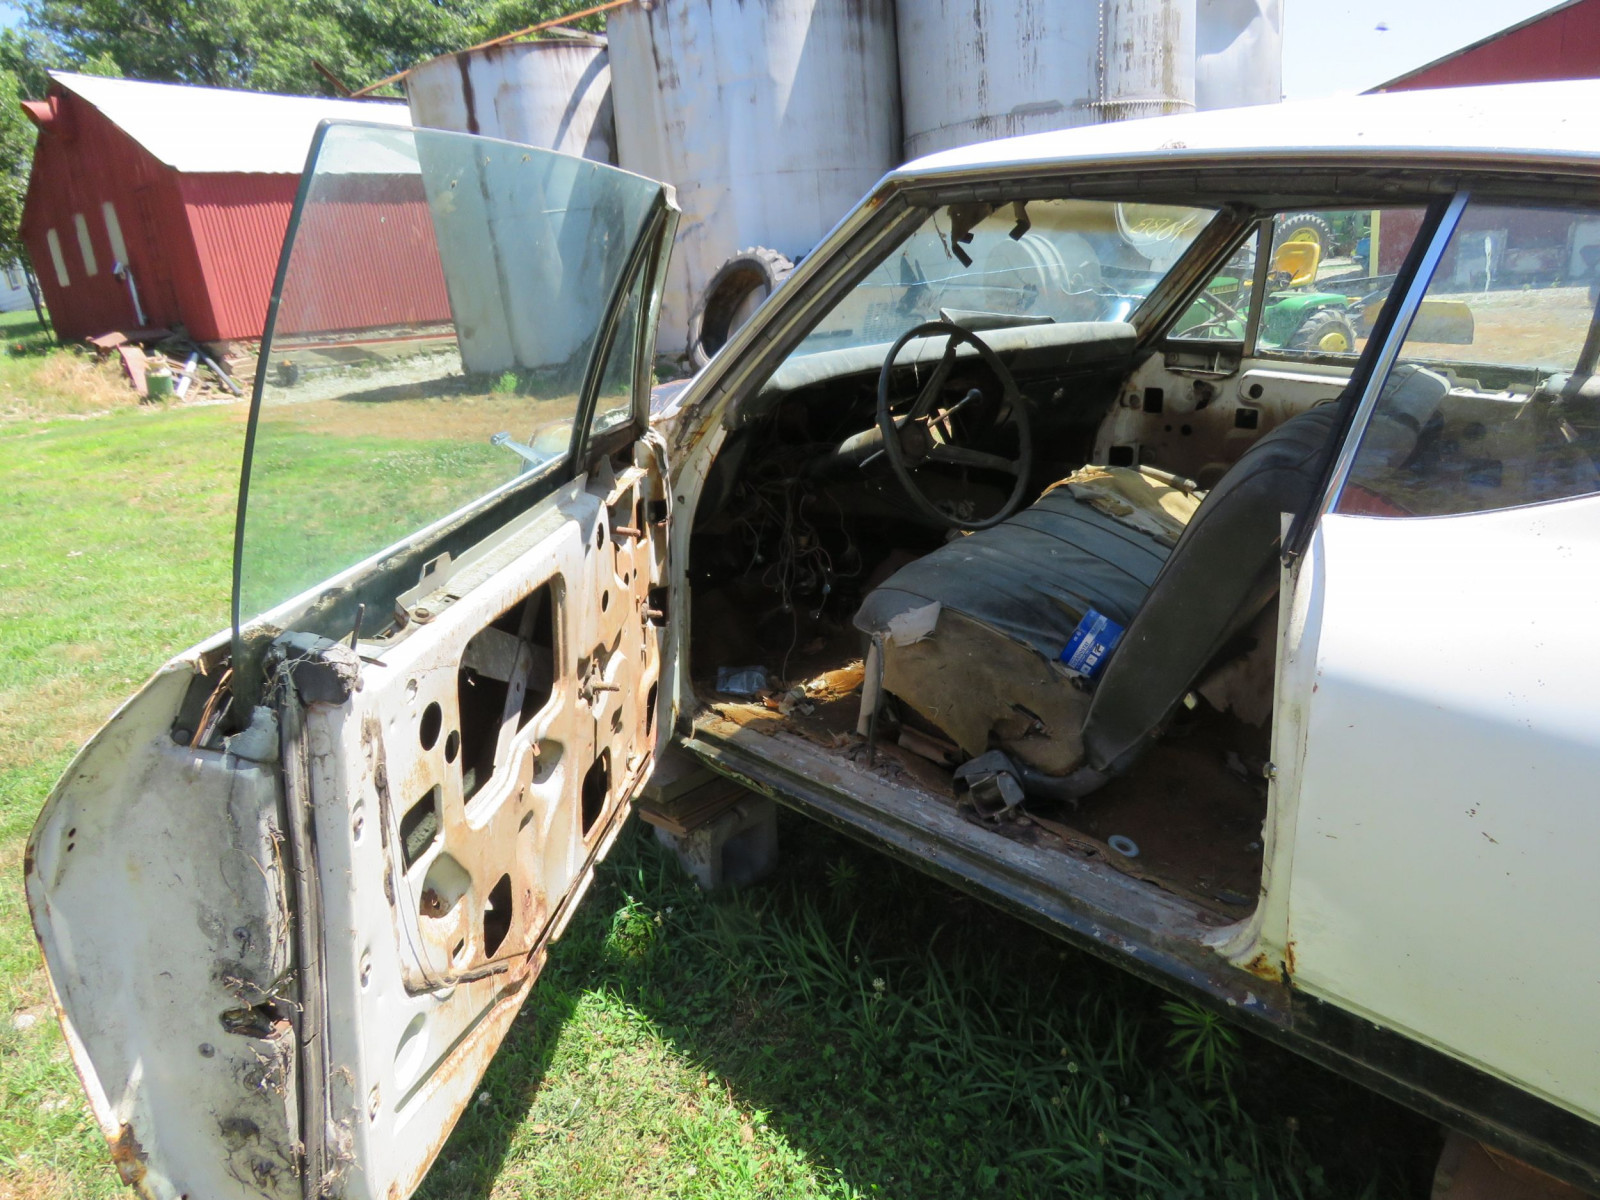 1968 Chevrolet Chevelle 2dr HT Project or Parts - Image 11